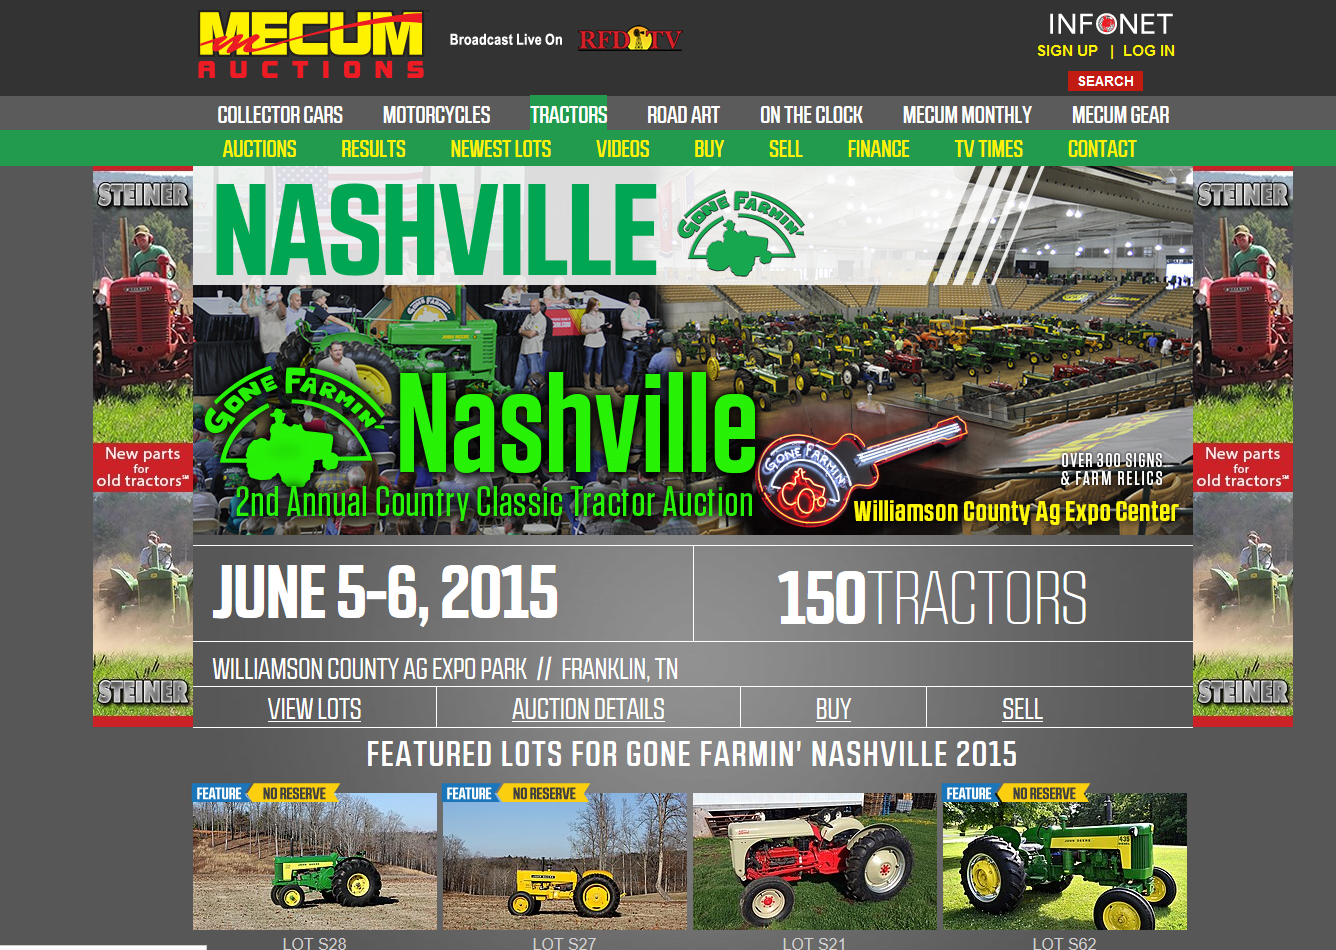 Steiner Tractor Parts & Mecum Auctions Announce a Long-Term